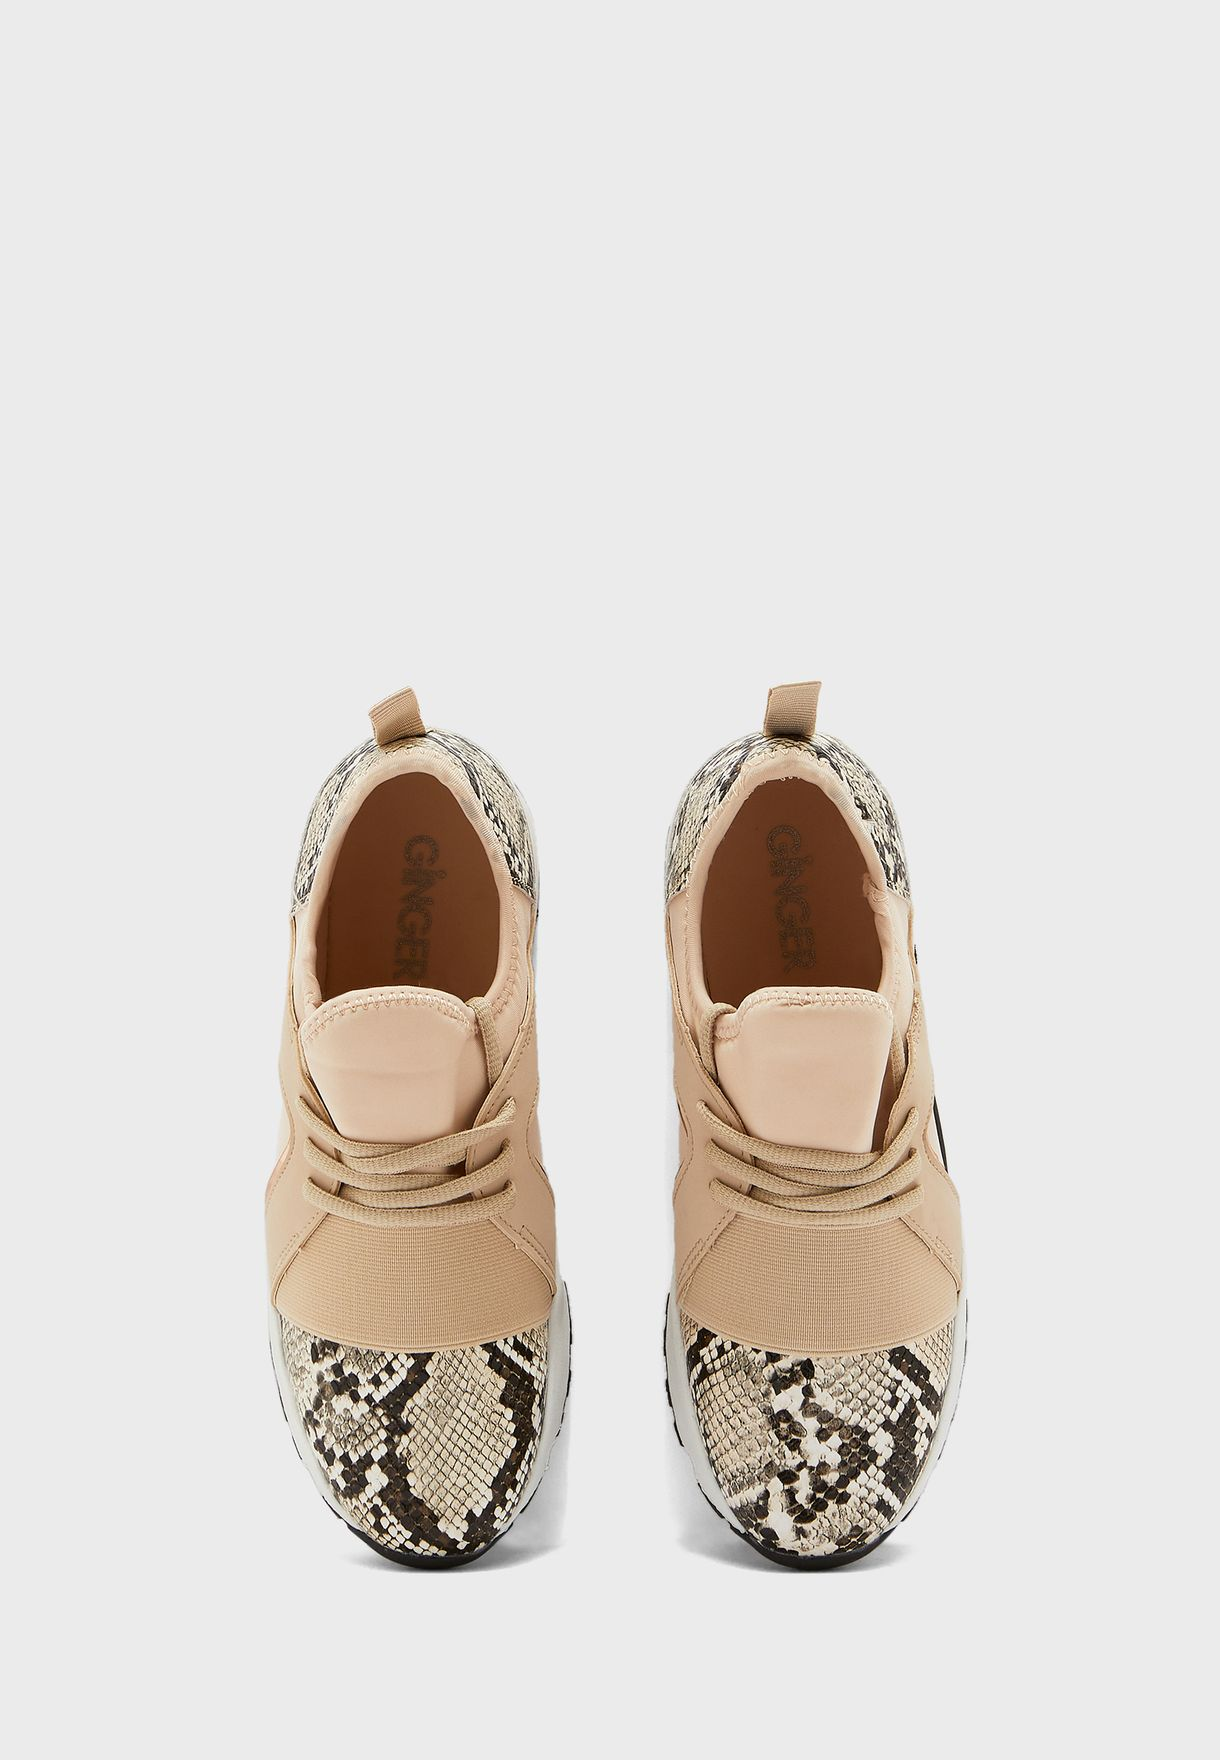 Mix Material Sneakers